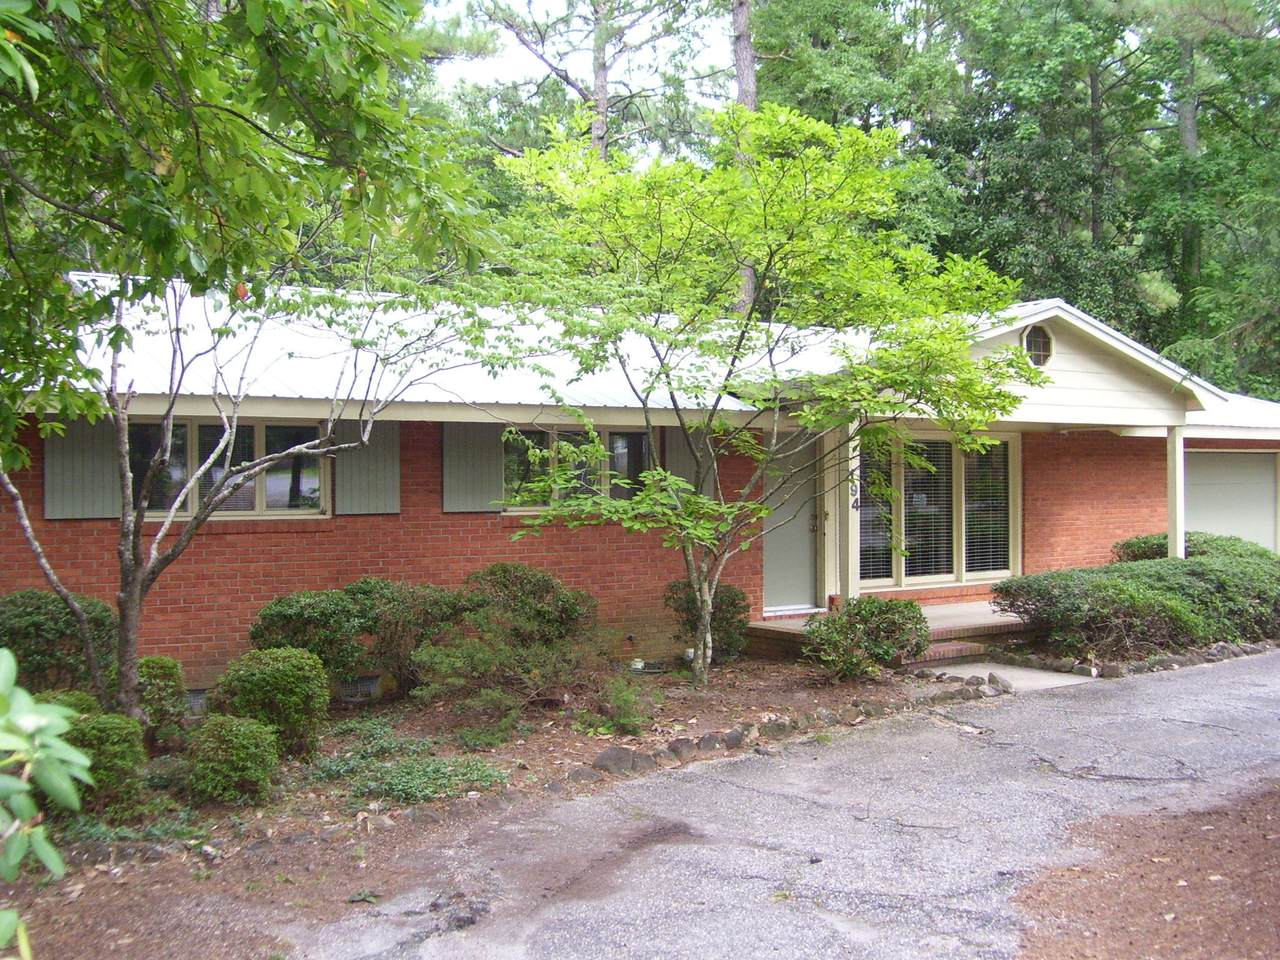 194 Boiling Springs Circle - Photo 1